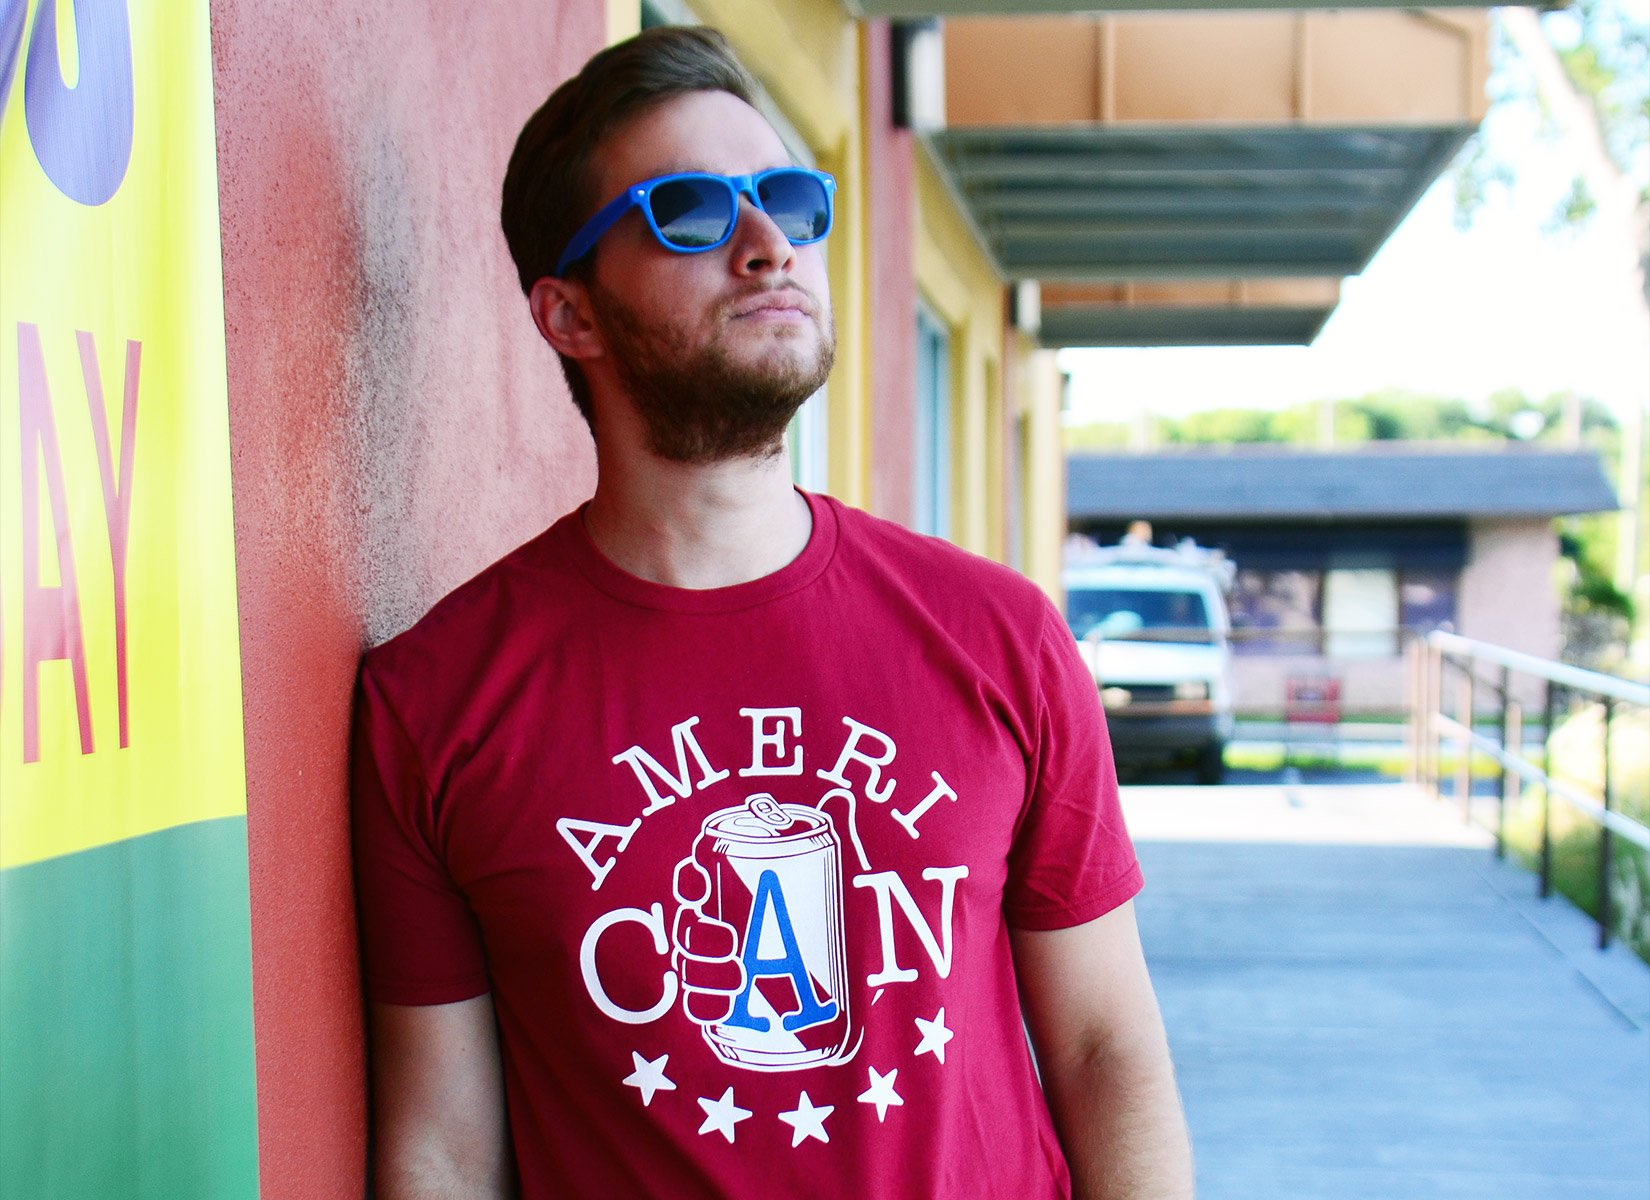 AmeriCAN on Mens T-Shirt